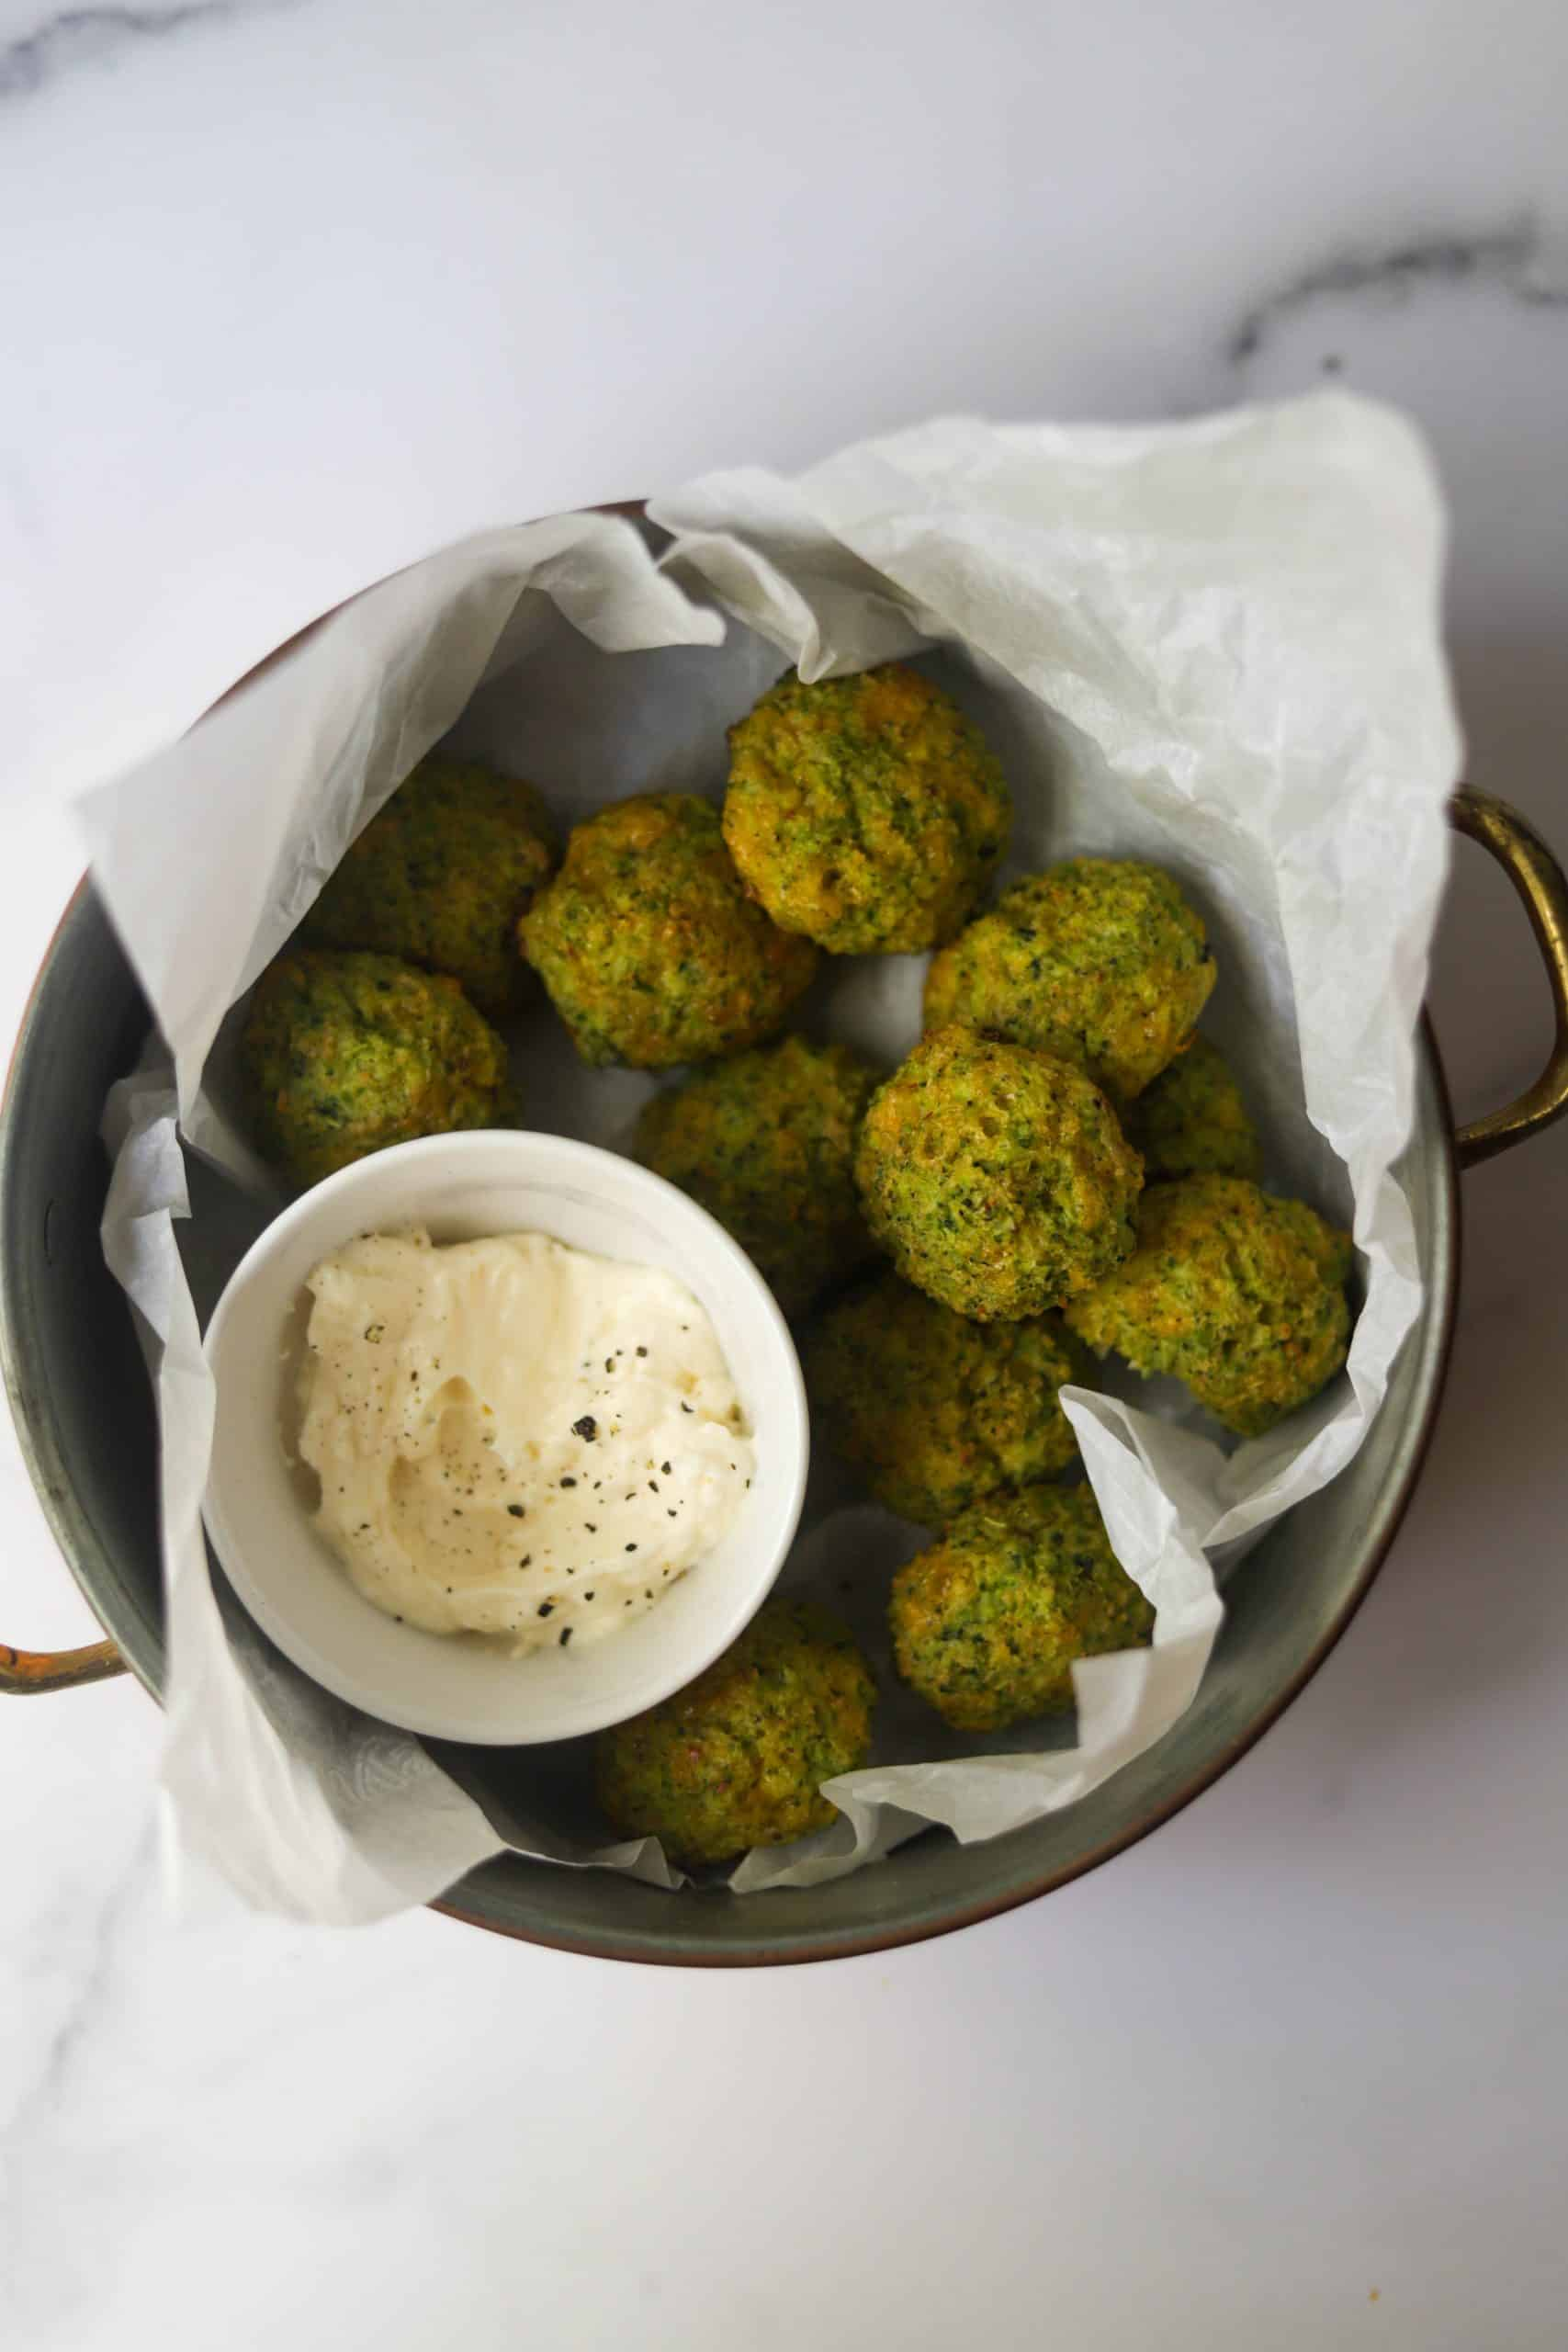 A container full of broccoli cheddar bites.